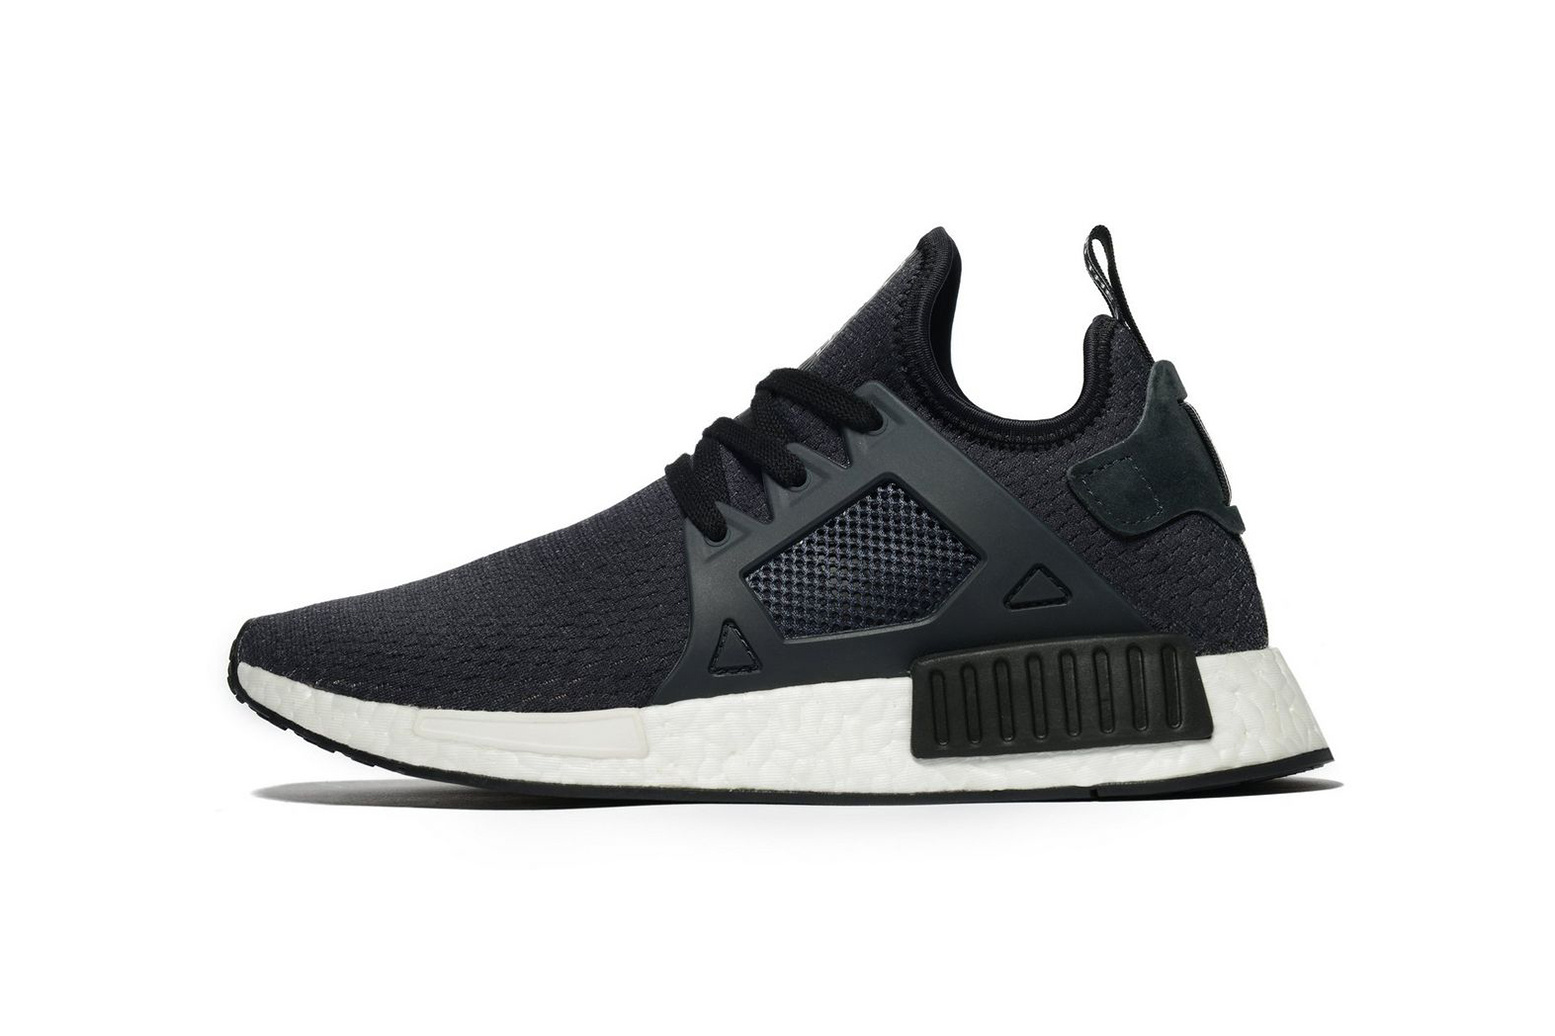 adidas-nmd-xr1-jd-sports-exclusive-2